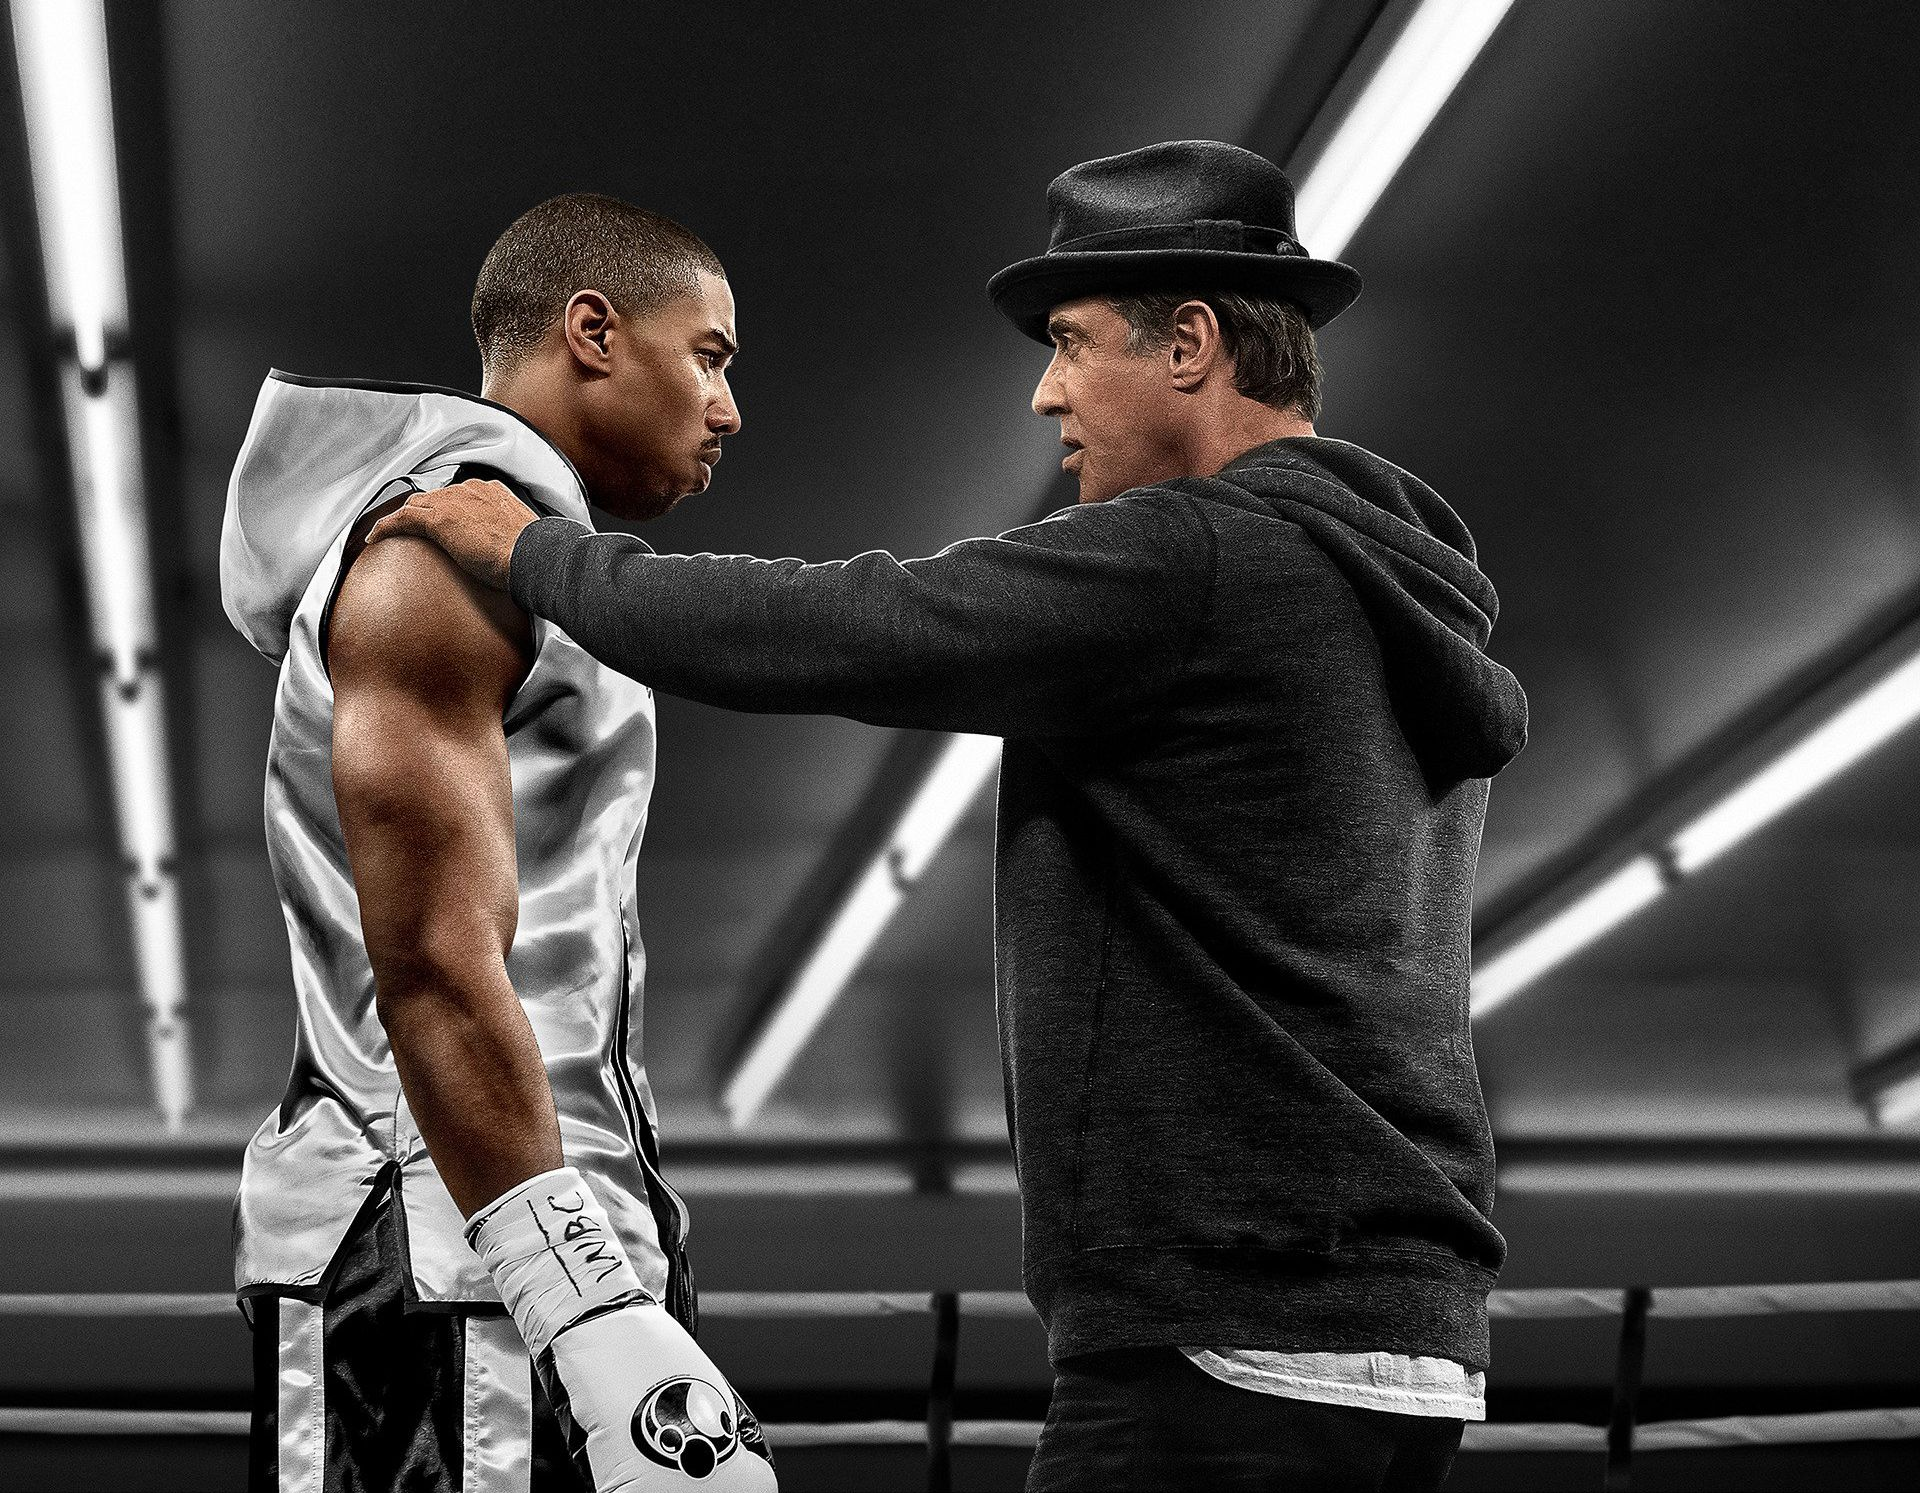 1920x1493 Michael B Jordan And Sylvester Stallone In Creed Movie, HD ...